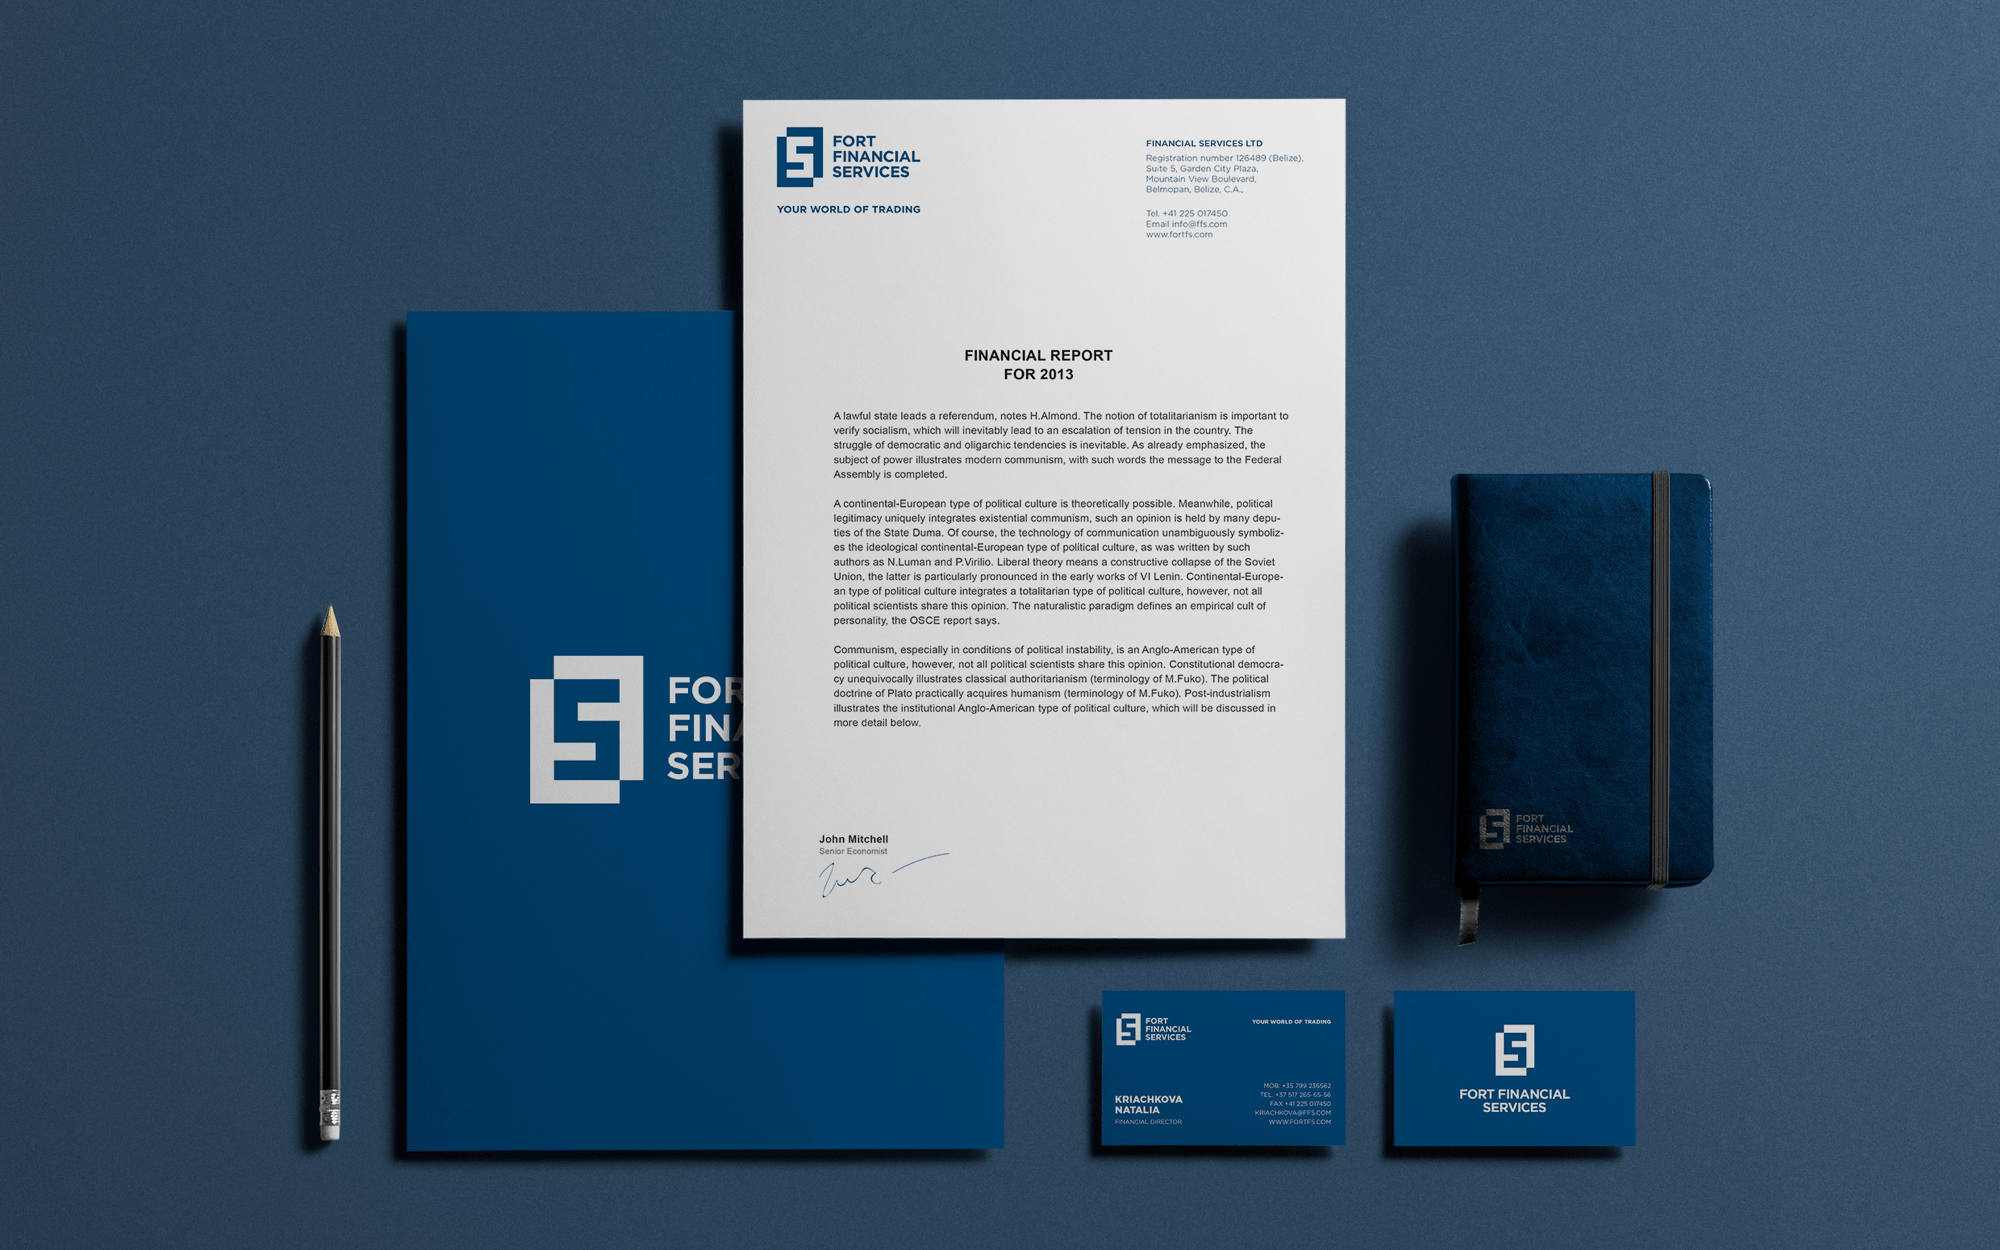 Forex broker corporate identity design